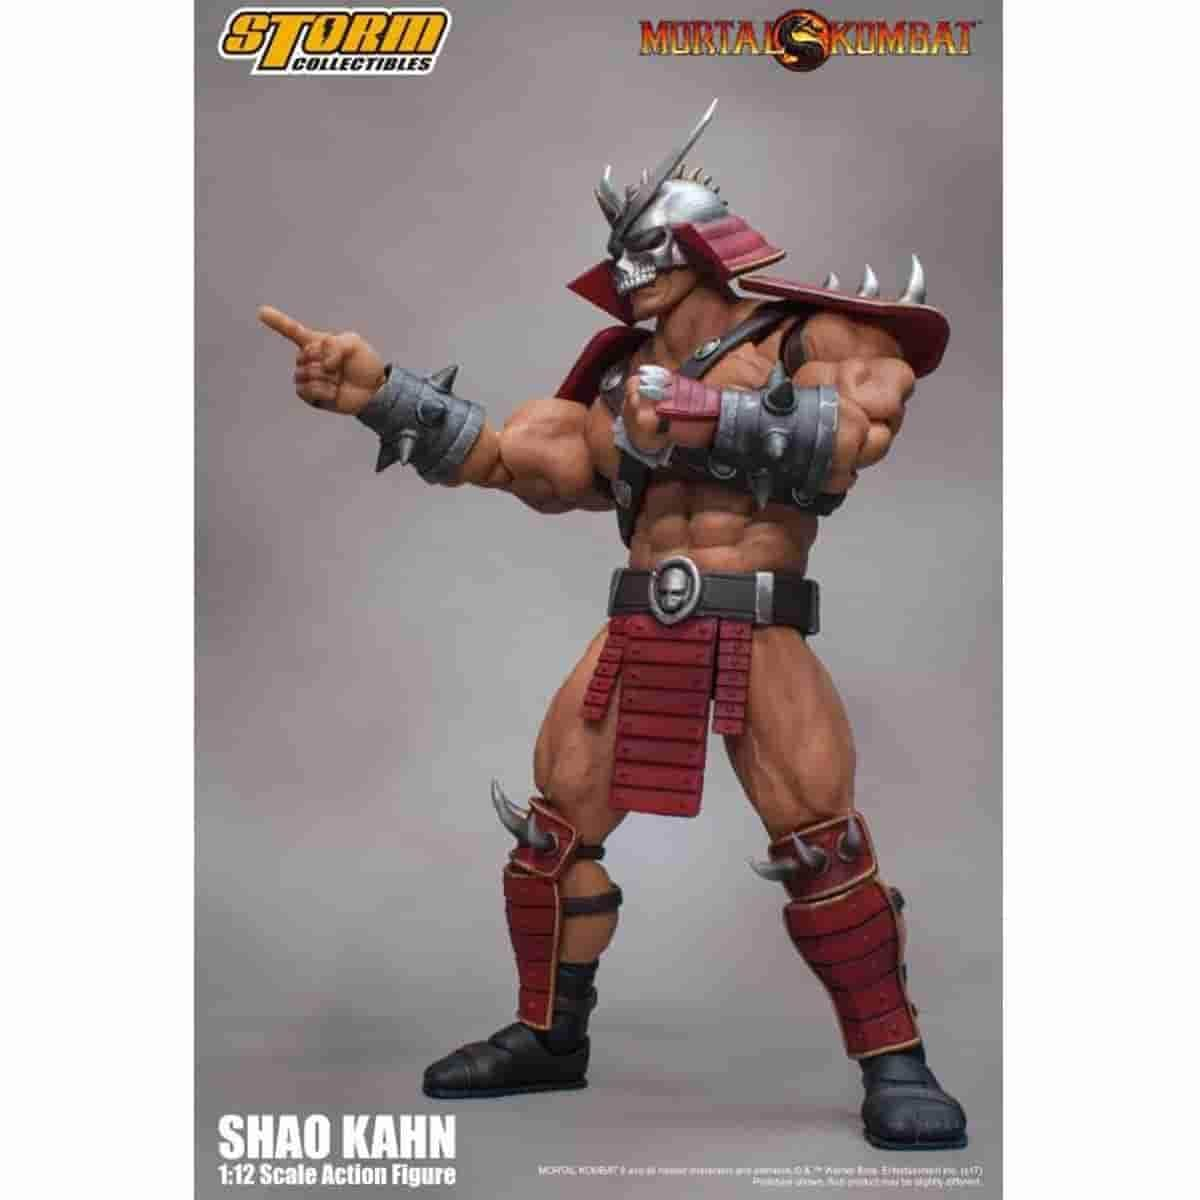 Shao Kahn Regular Variant Mortal Kombat Action Figure by Storm Collectibles - IamRetro.com